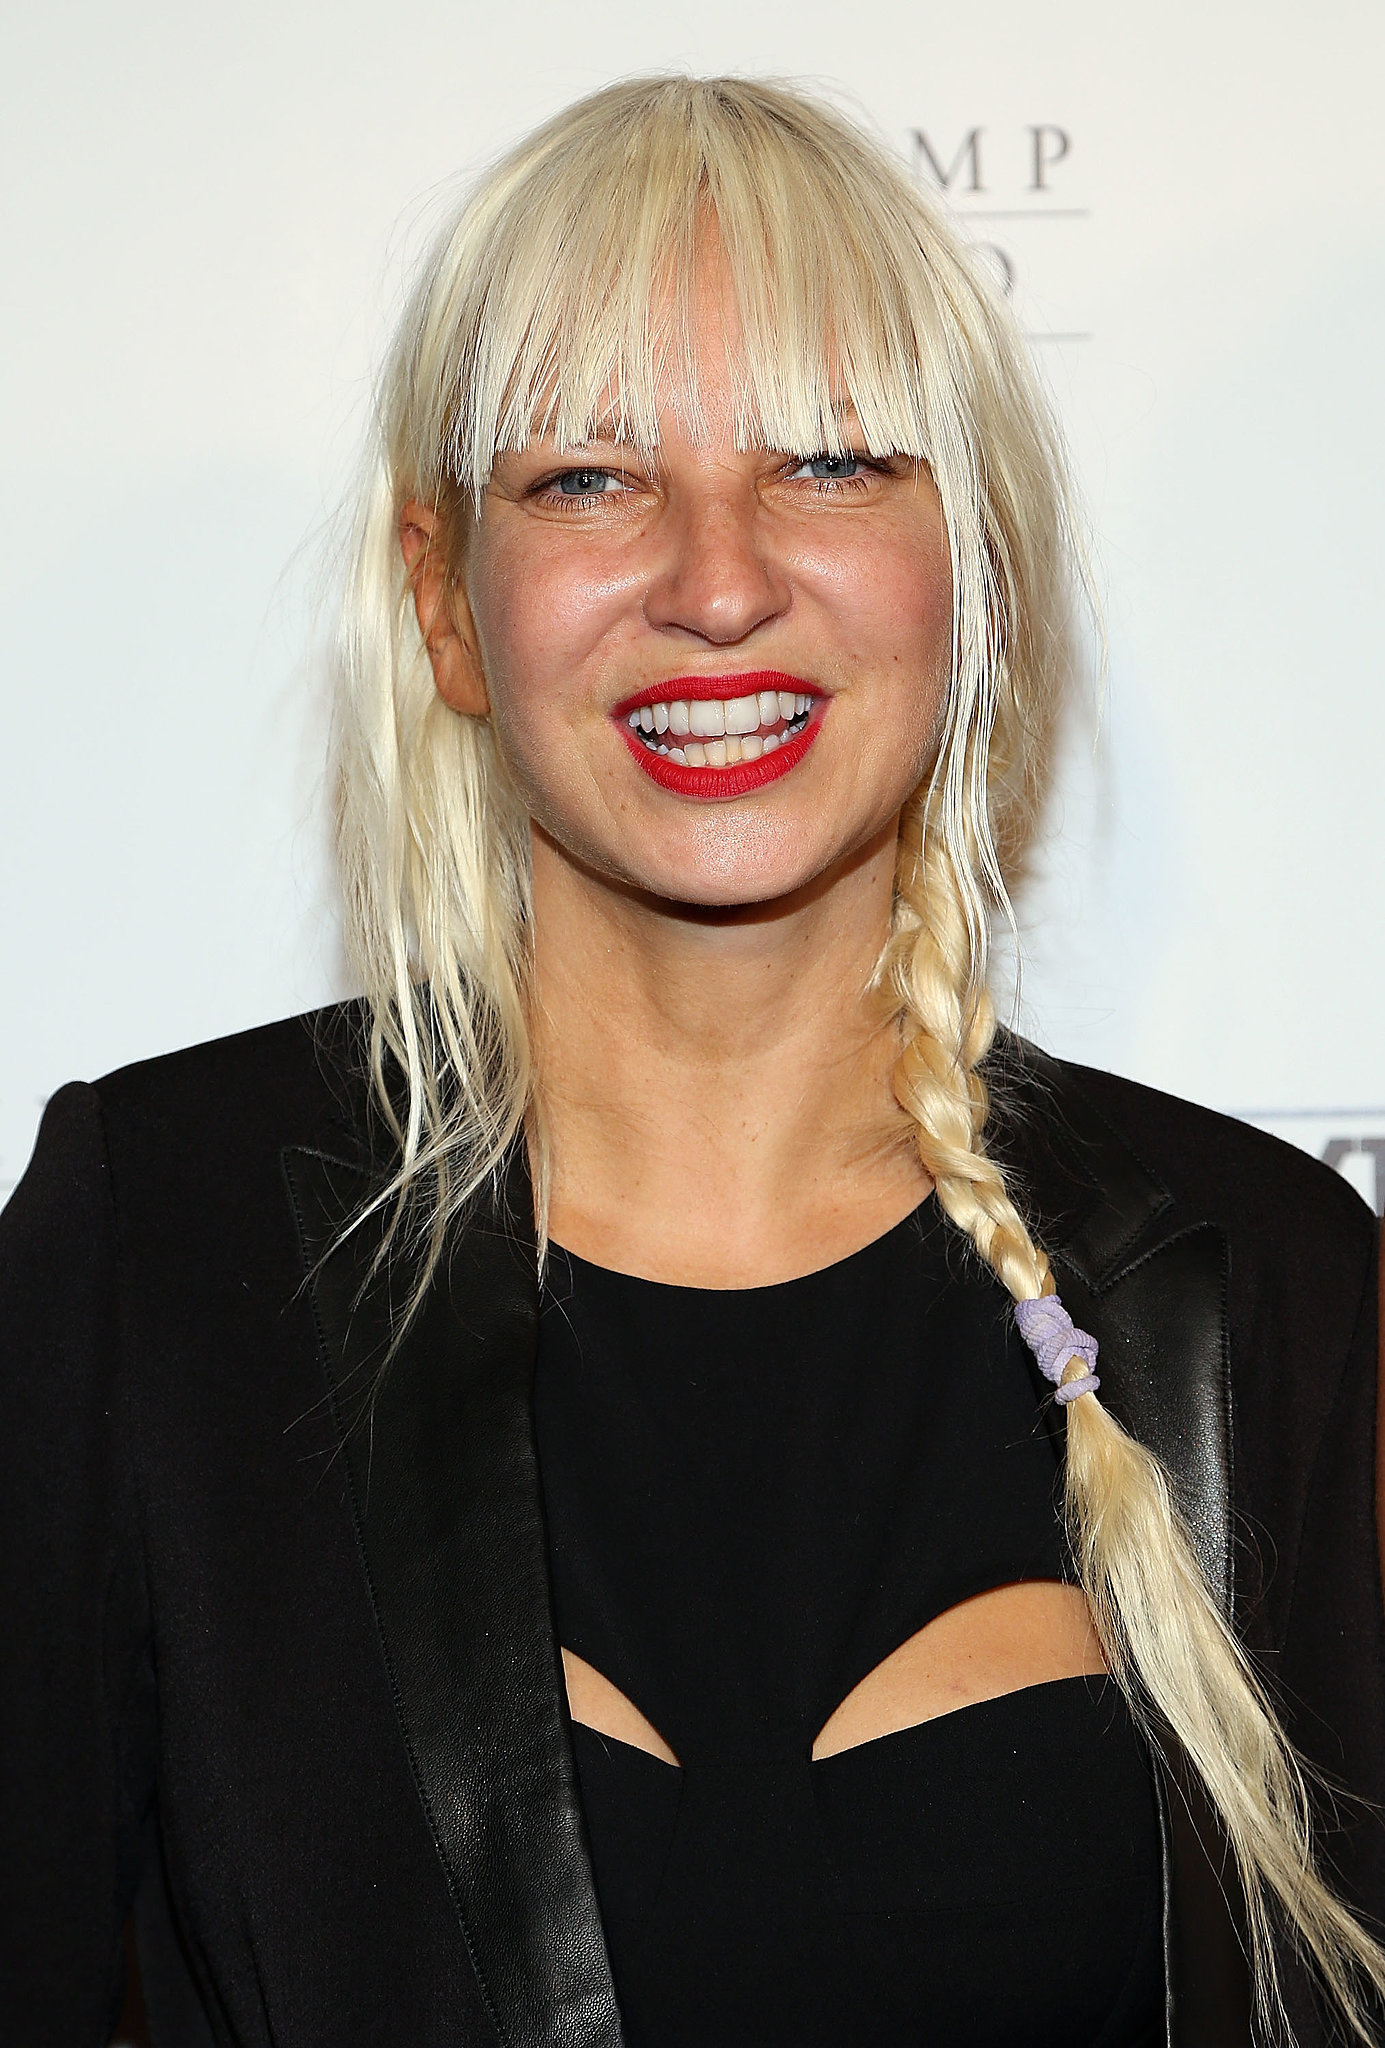 how tall is sia furler